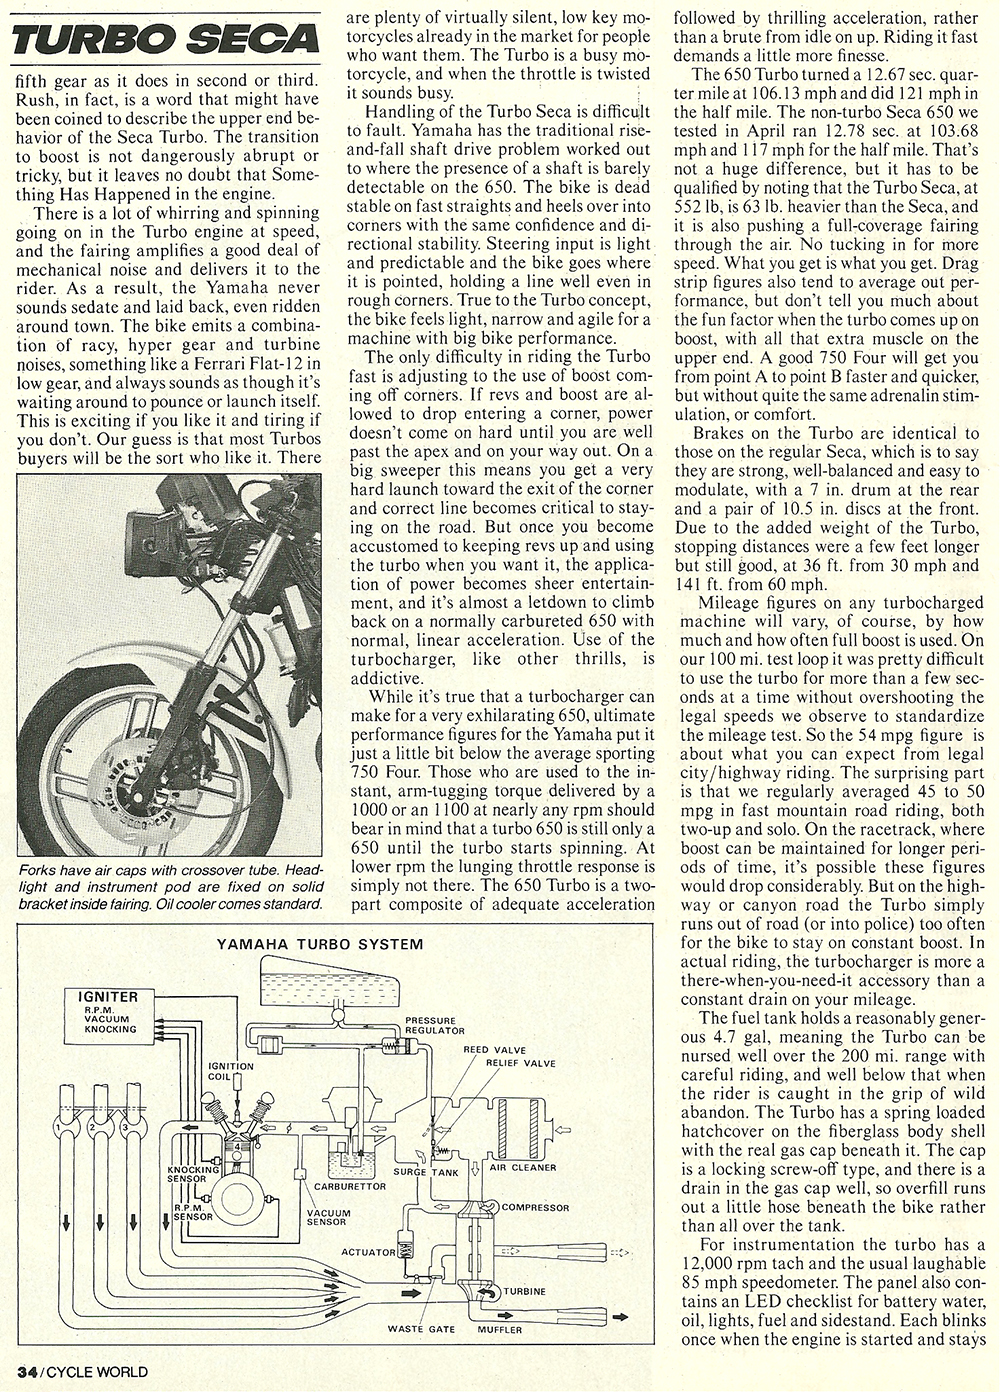 1982 Yamaha Turbo Seca 650 road test 07.jpg